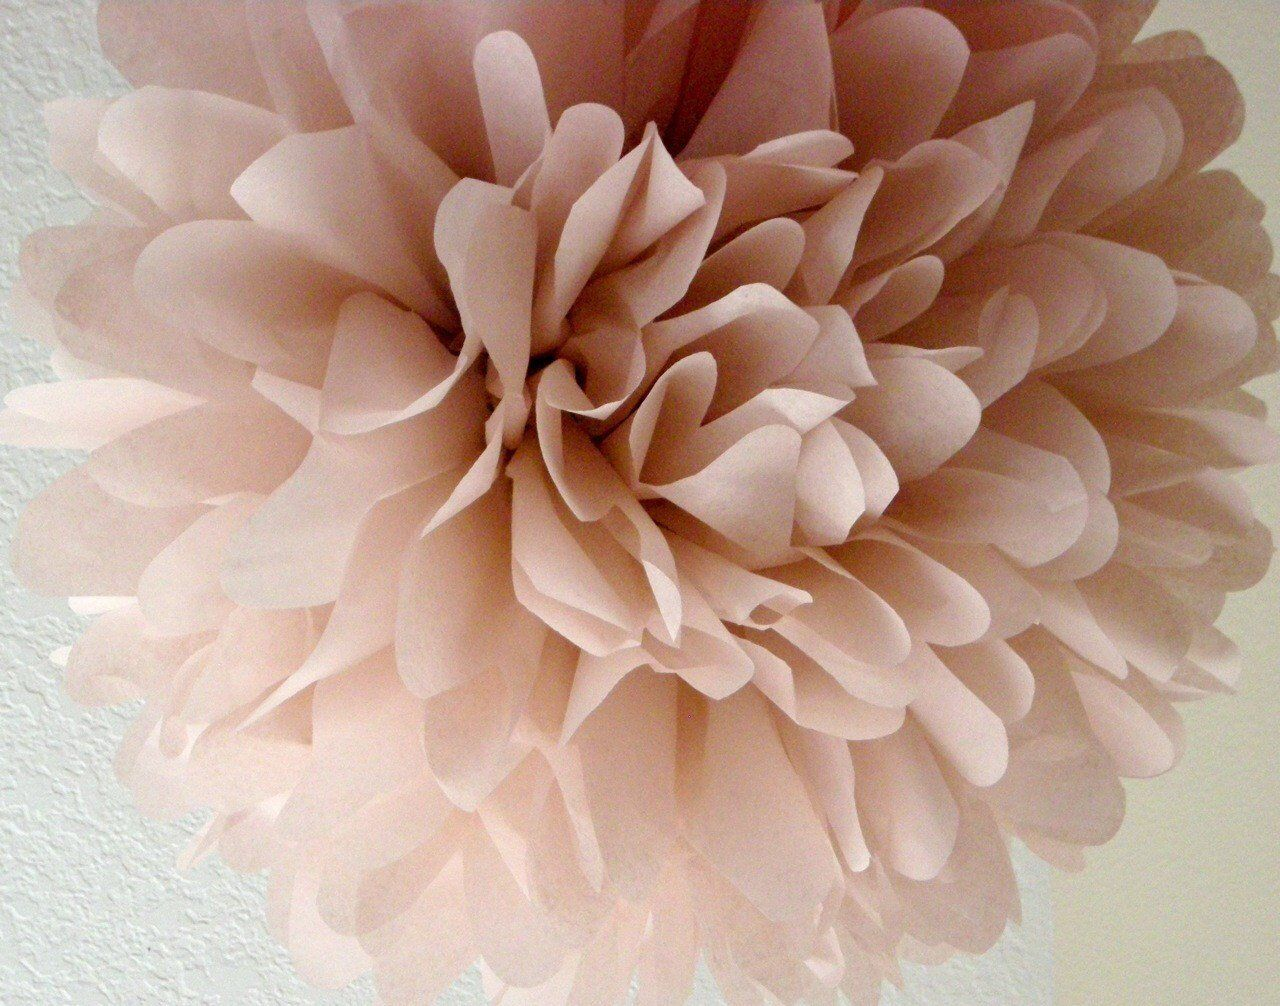 Dusty Rose Tissue Paper Pompom Rose Gold Fall Theme Wedding Decoration Girl Pink First Birthday Nursery Blush Baby Bridal Shower Aisle Chair Fall Theme Wedding Decorations Blush Pink Decor Wedding Rose